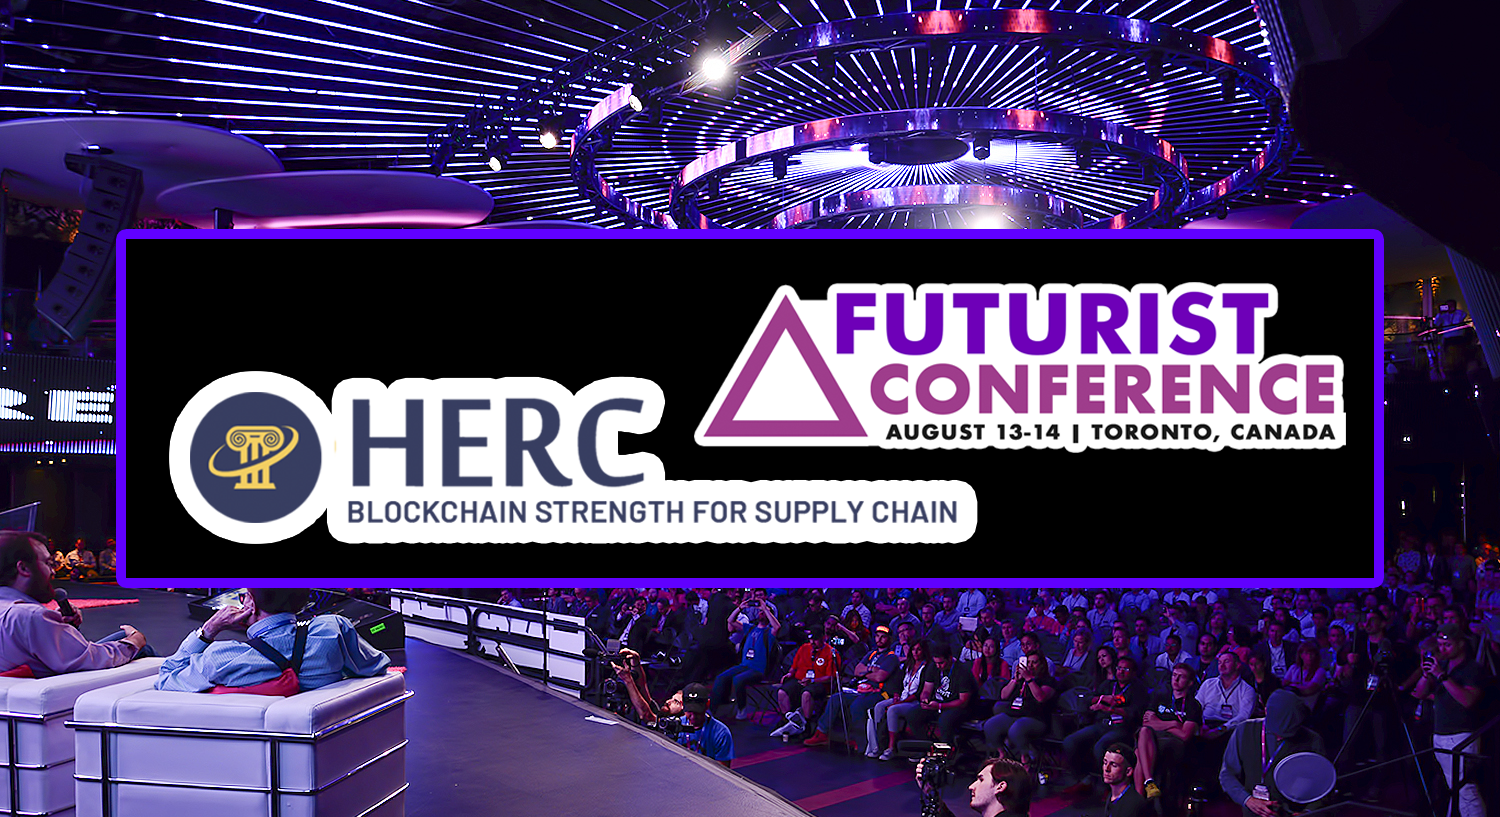 Experience HERC Technology Live at Blockchain Futurist Conference by Tracking the Produce, Artwork, Insurance and Collectables Onsite